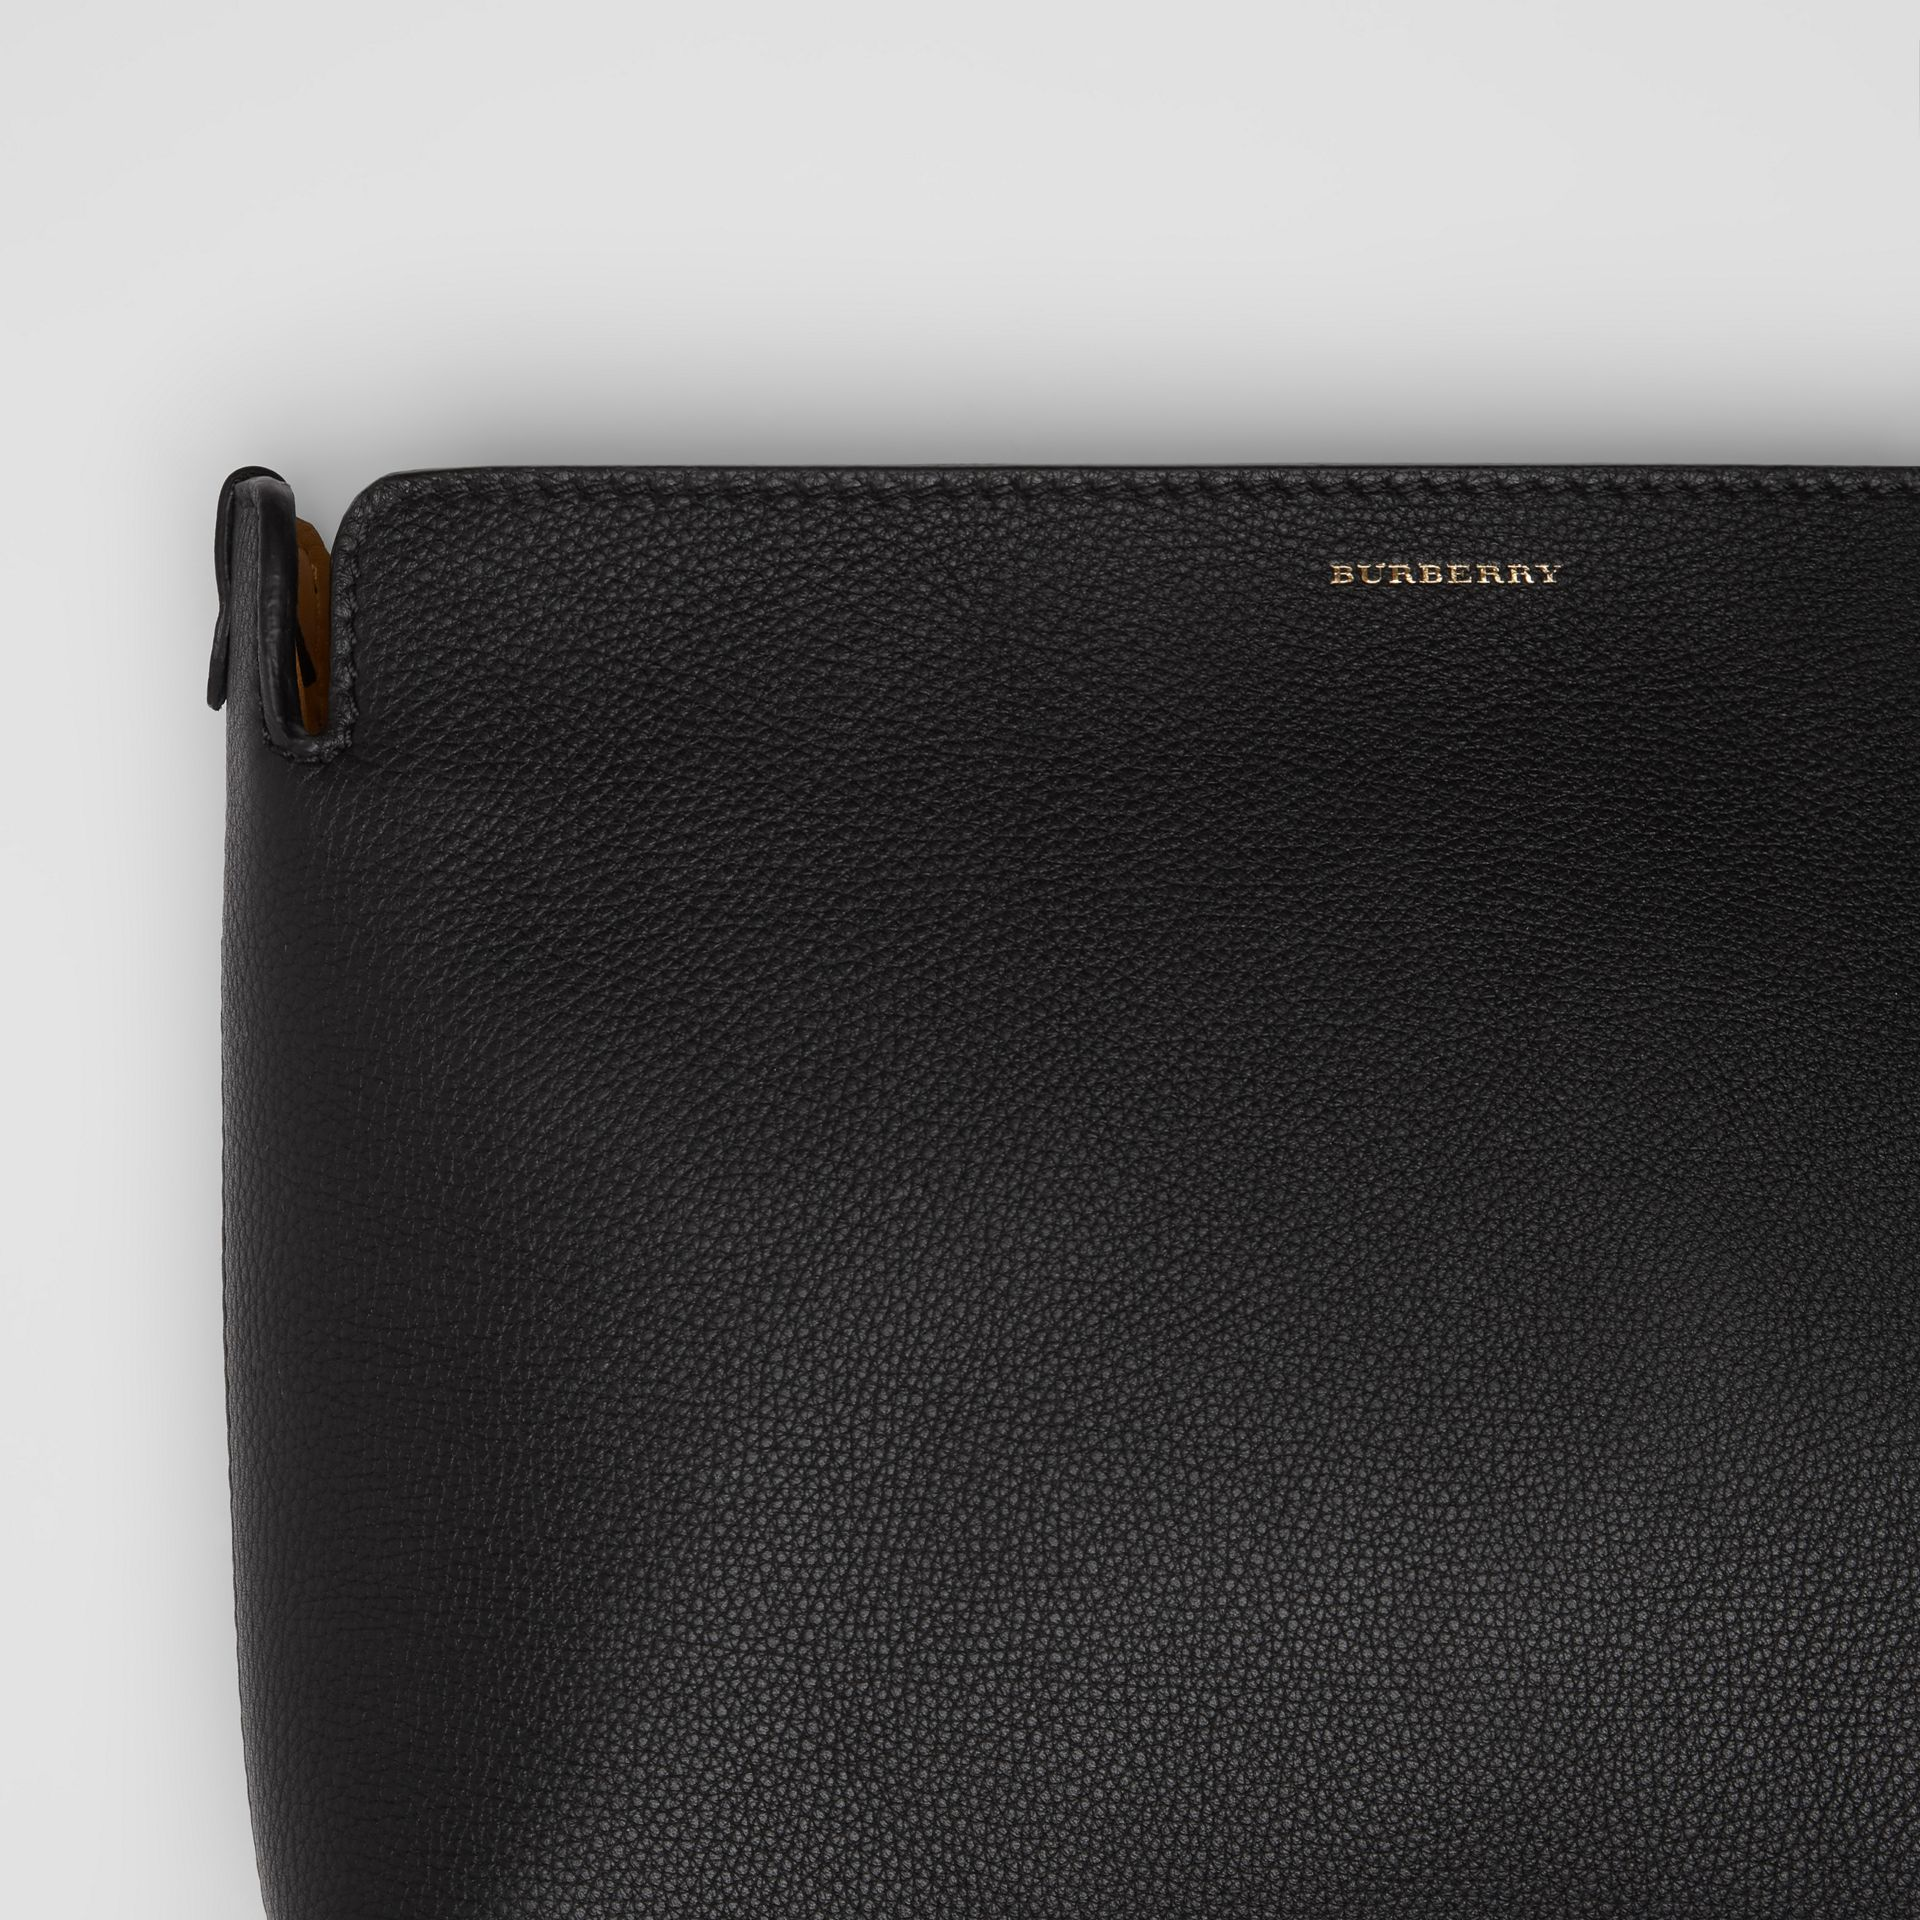 Medium Tri-tone Leather Clutch in Black/sea Green | Burberry United Kingdom - gallery image 1